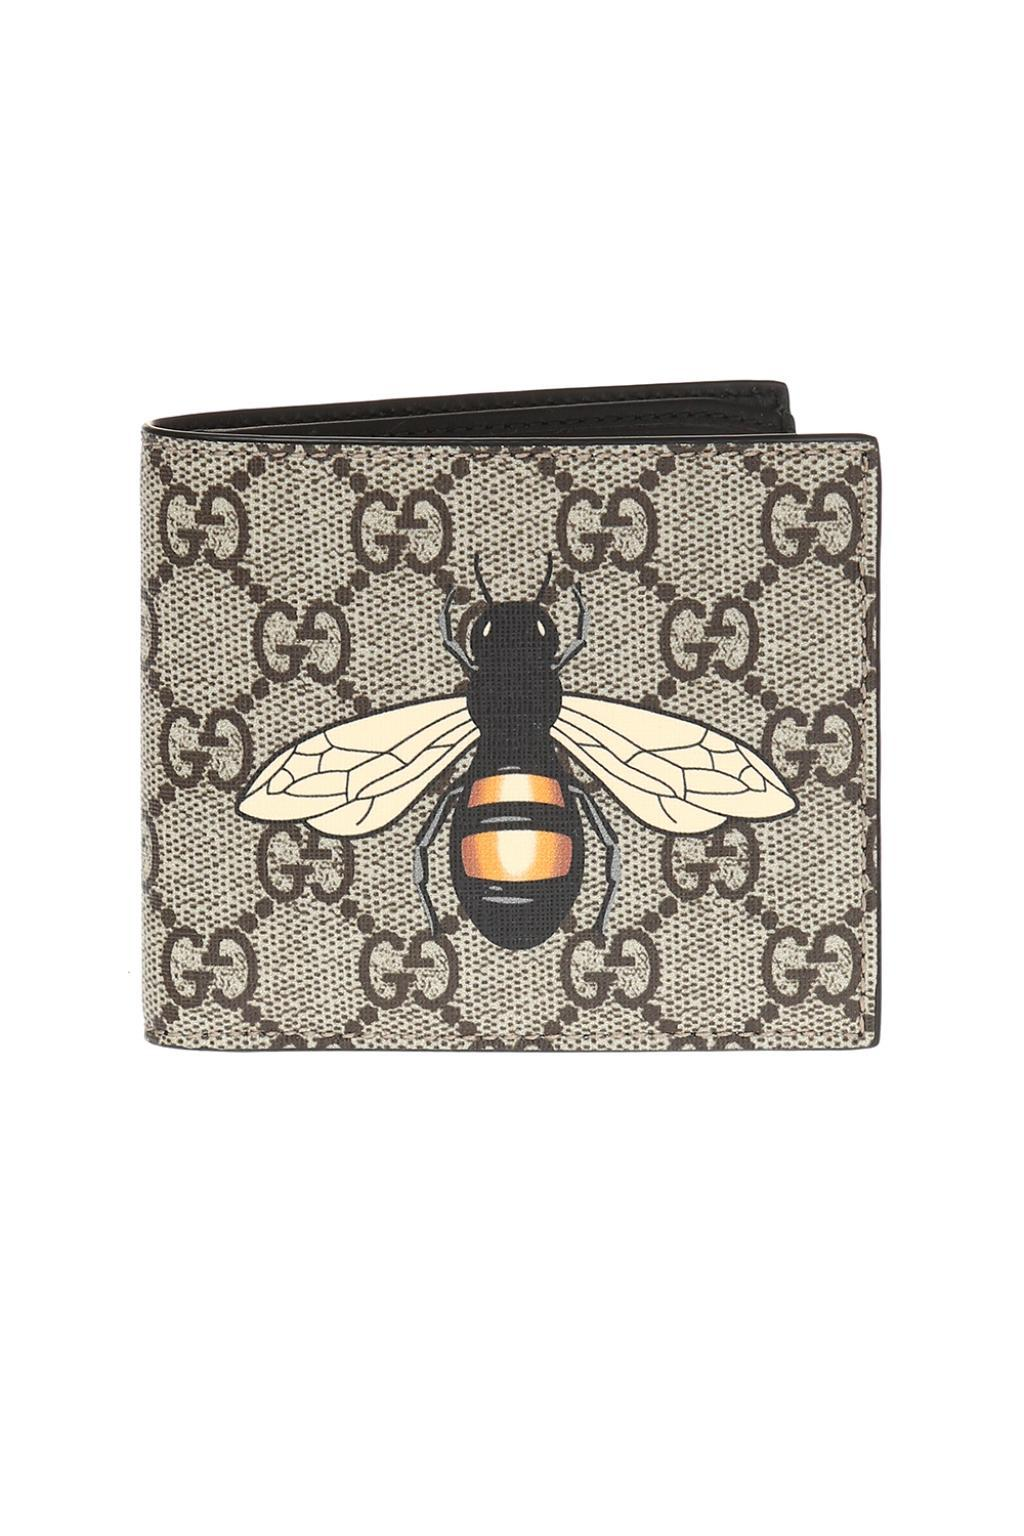 361e618ade562d Gucci Wallet With Bee Motif in Brown for Men - Lyst